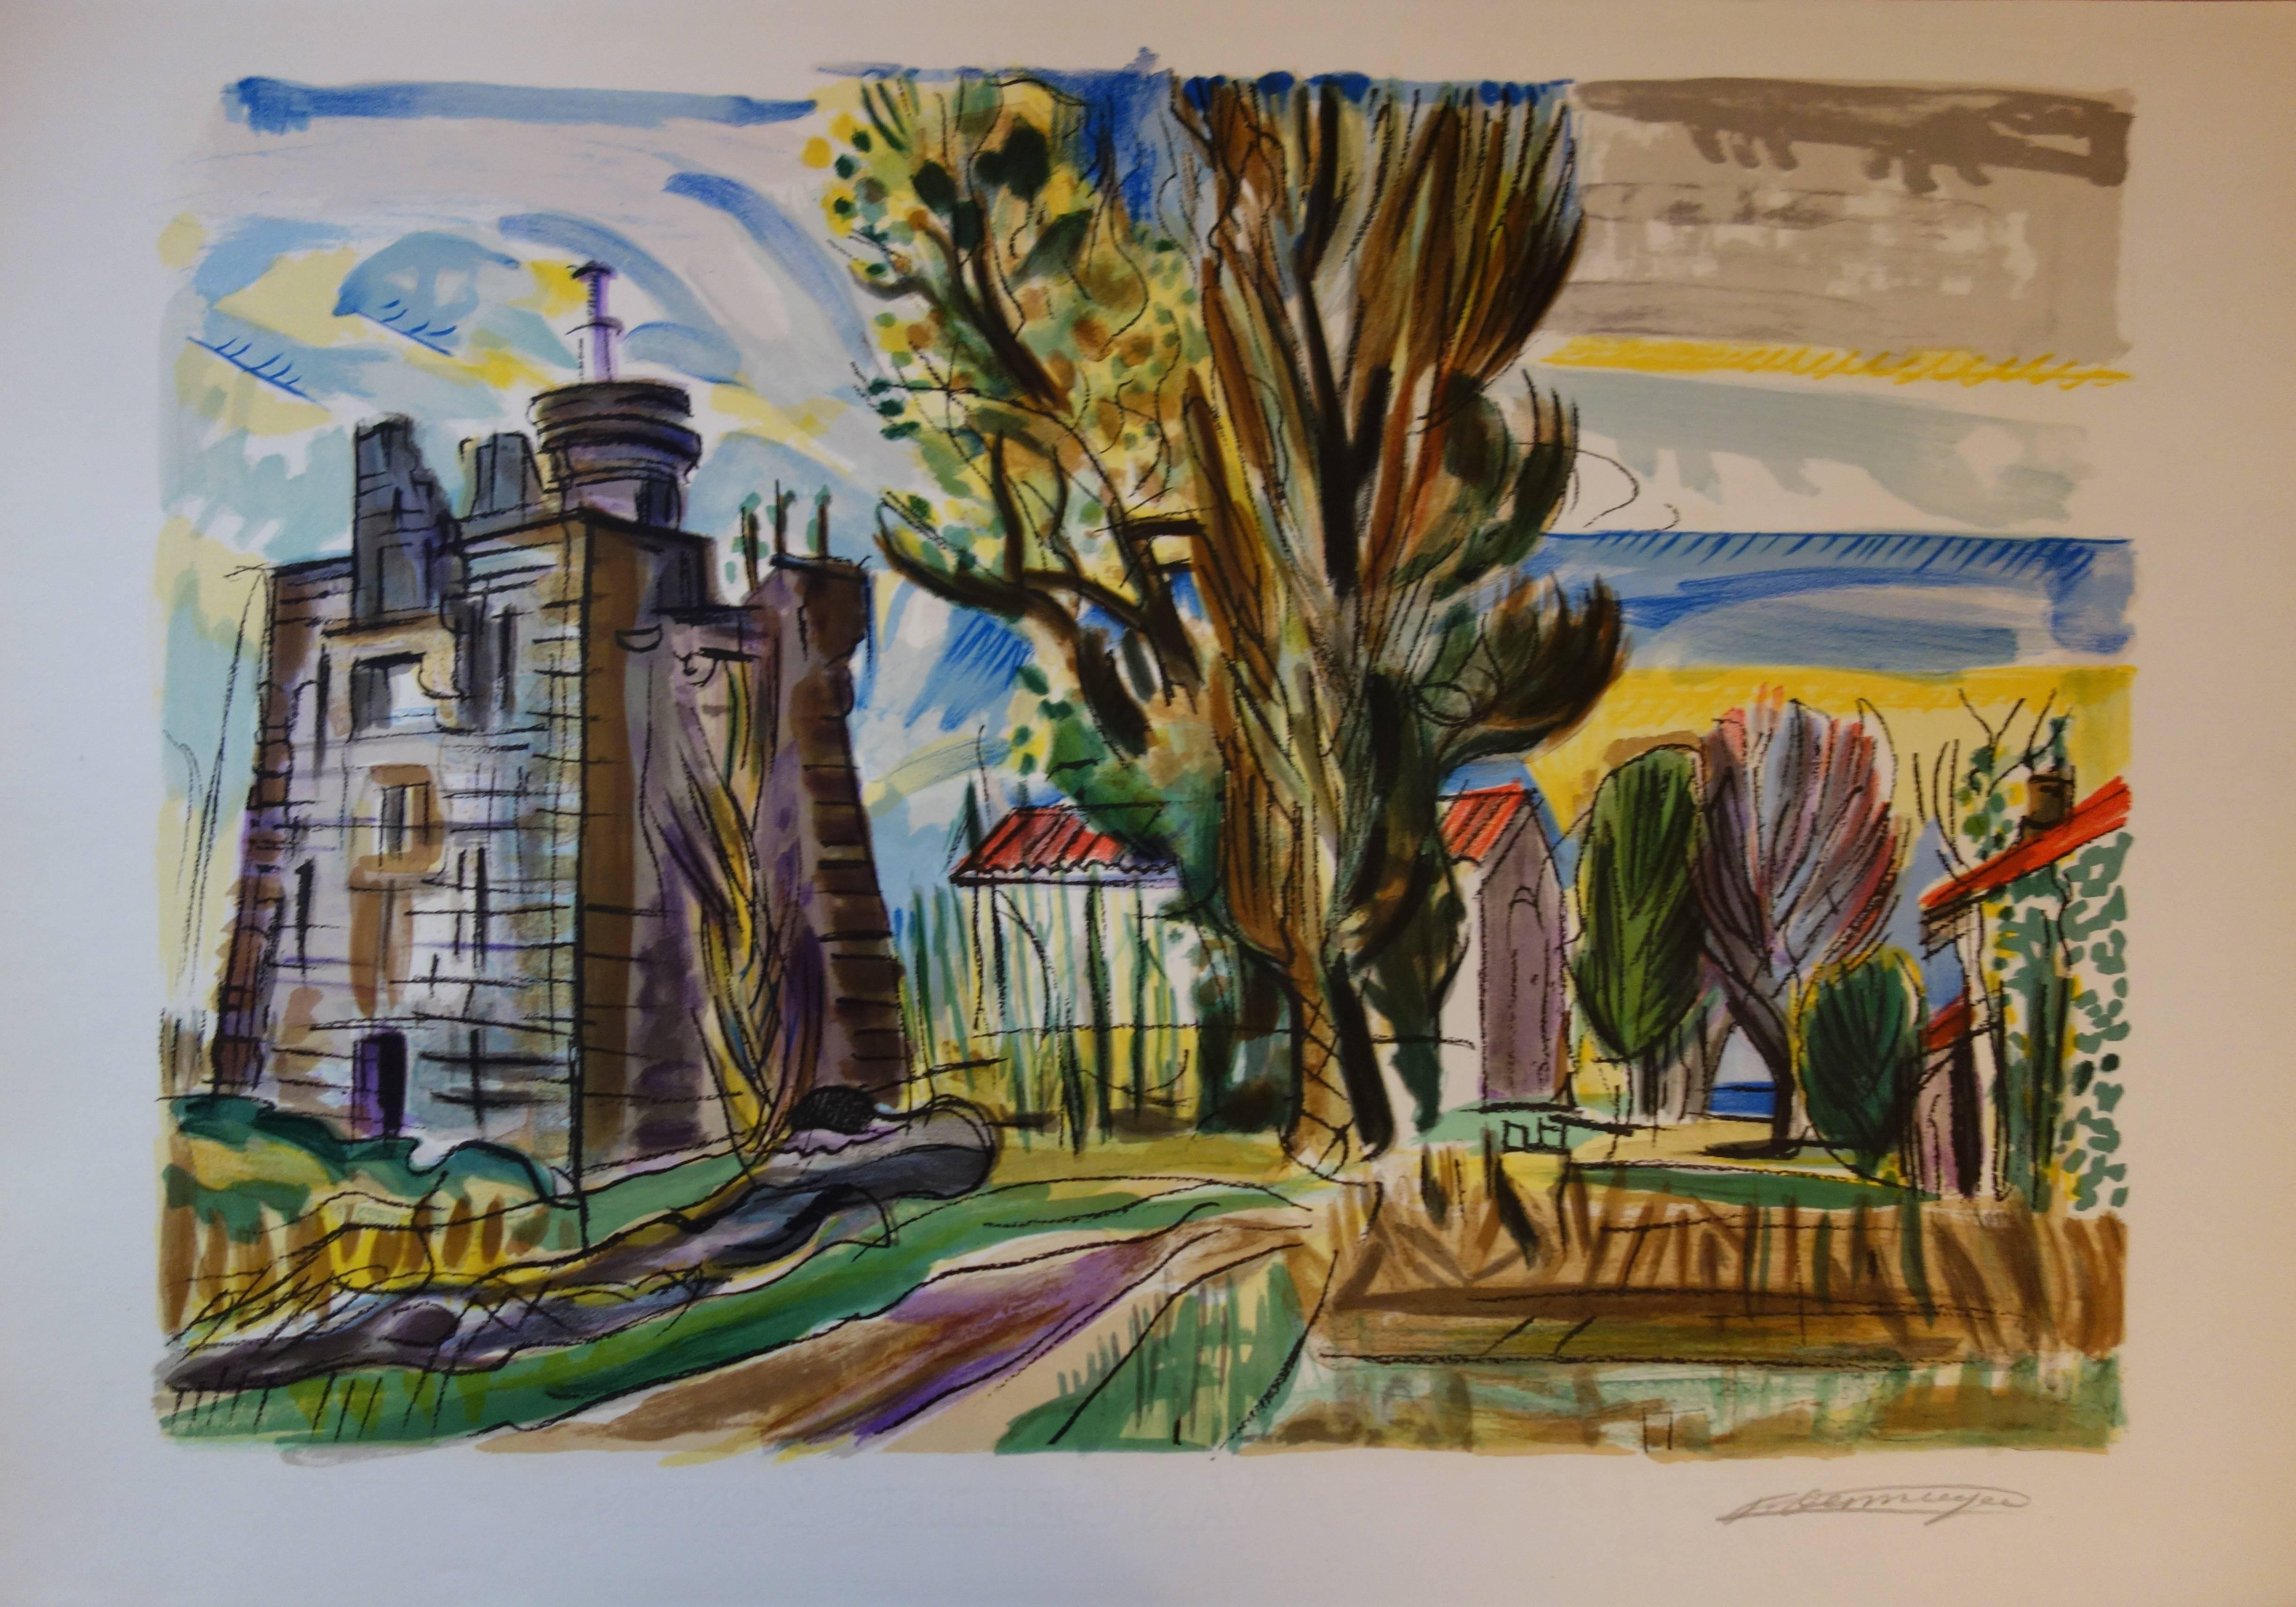 Old Castle in the South of France - Original handsigned lithograph